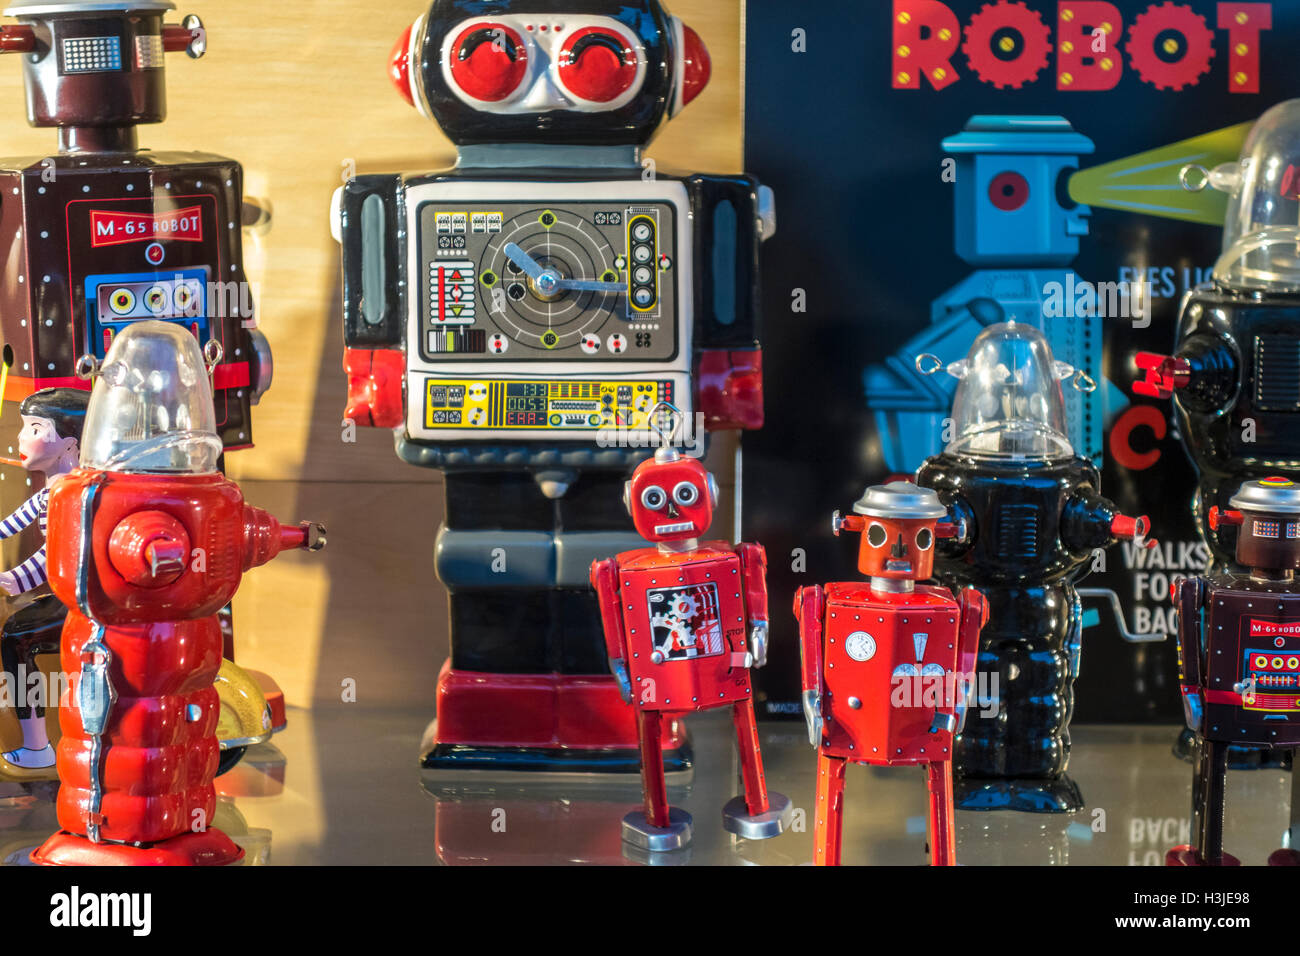 Group of Retro Robot toys. Vintage tin robots on display. - Stock Image